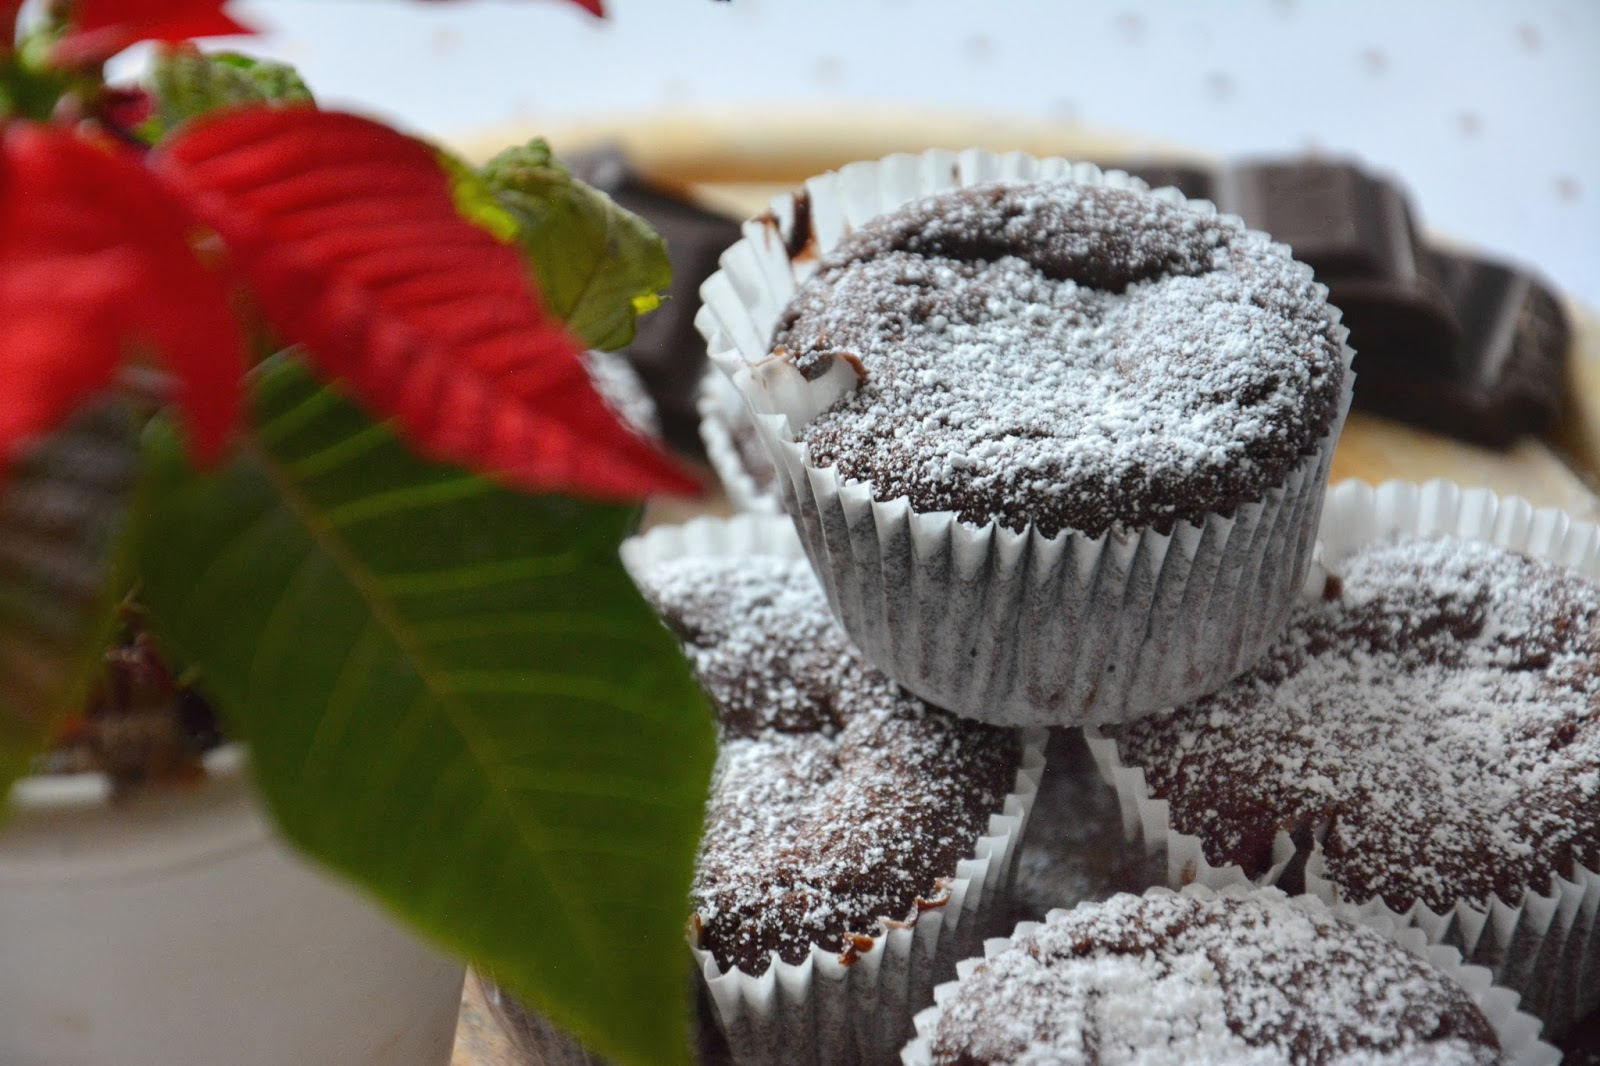 Vegan Chocolate Muffins With Hazelnut Cream Filling on Wood Platter; Christmas Star; Dark Chocolate